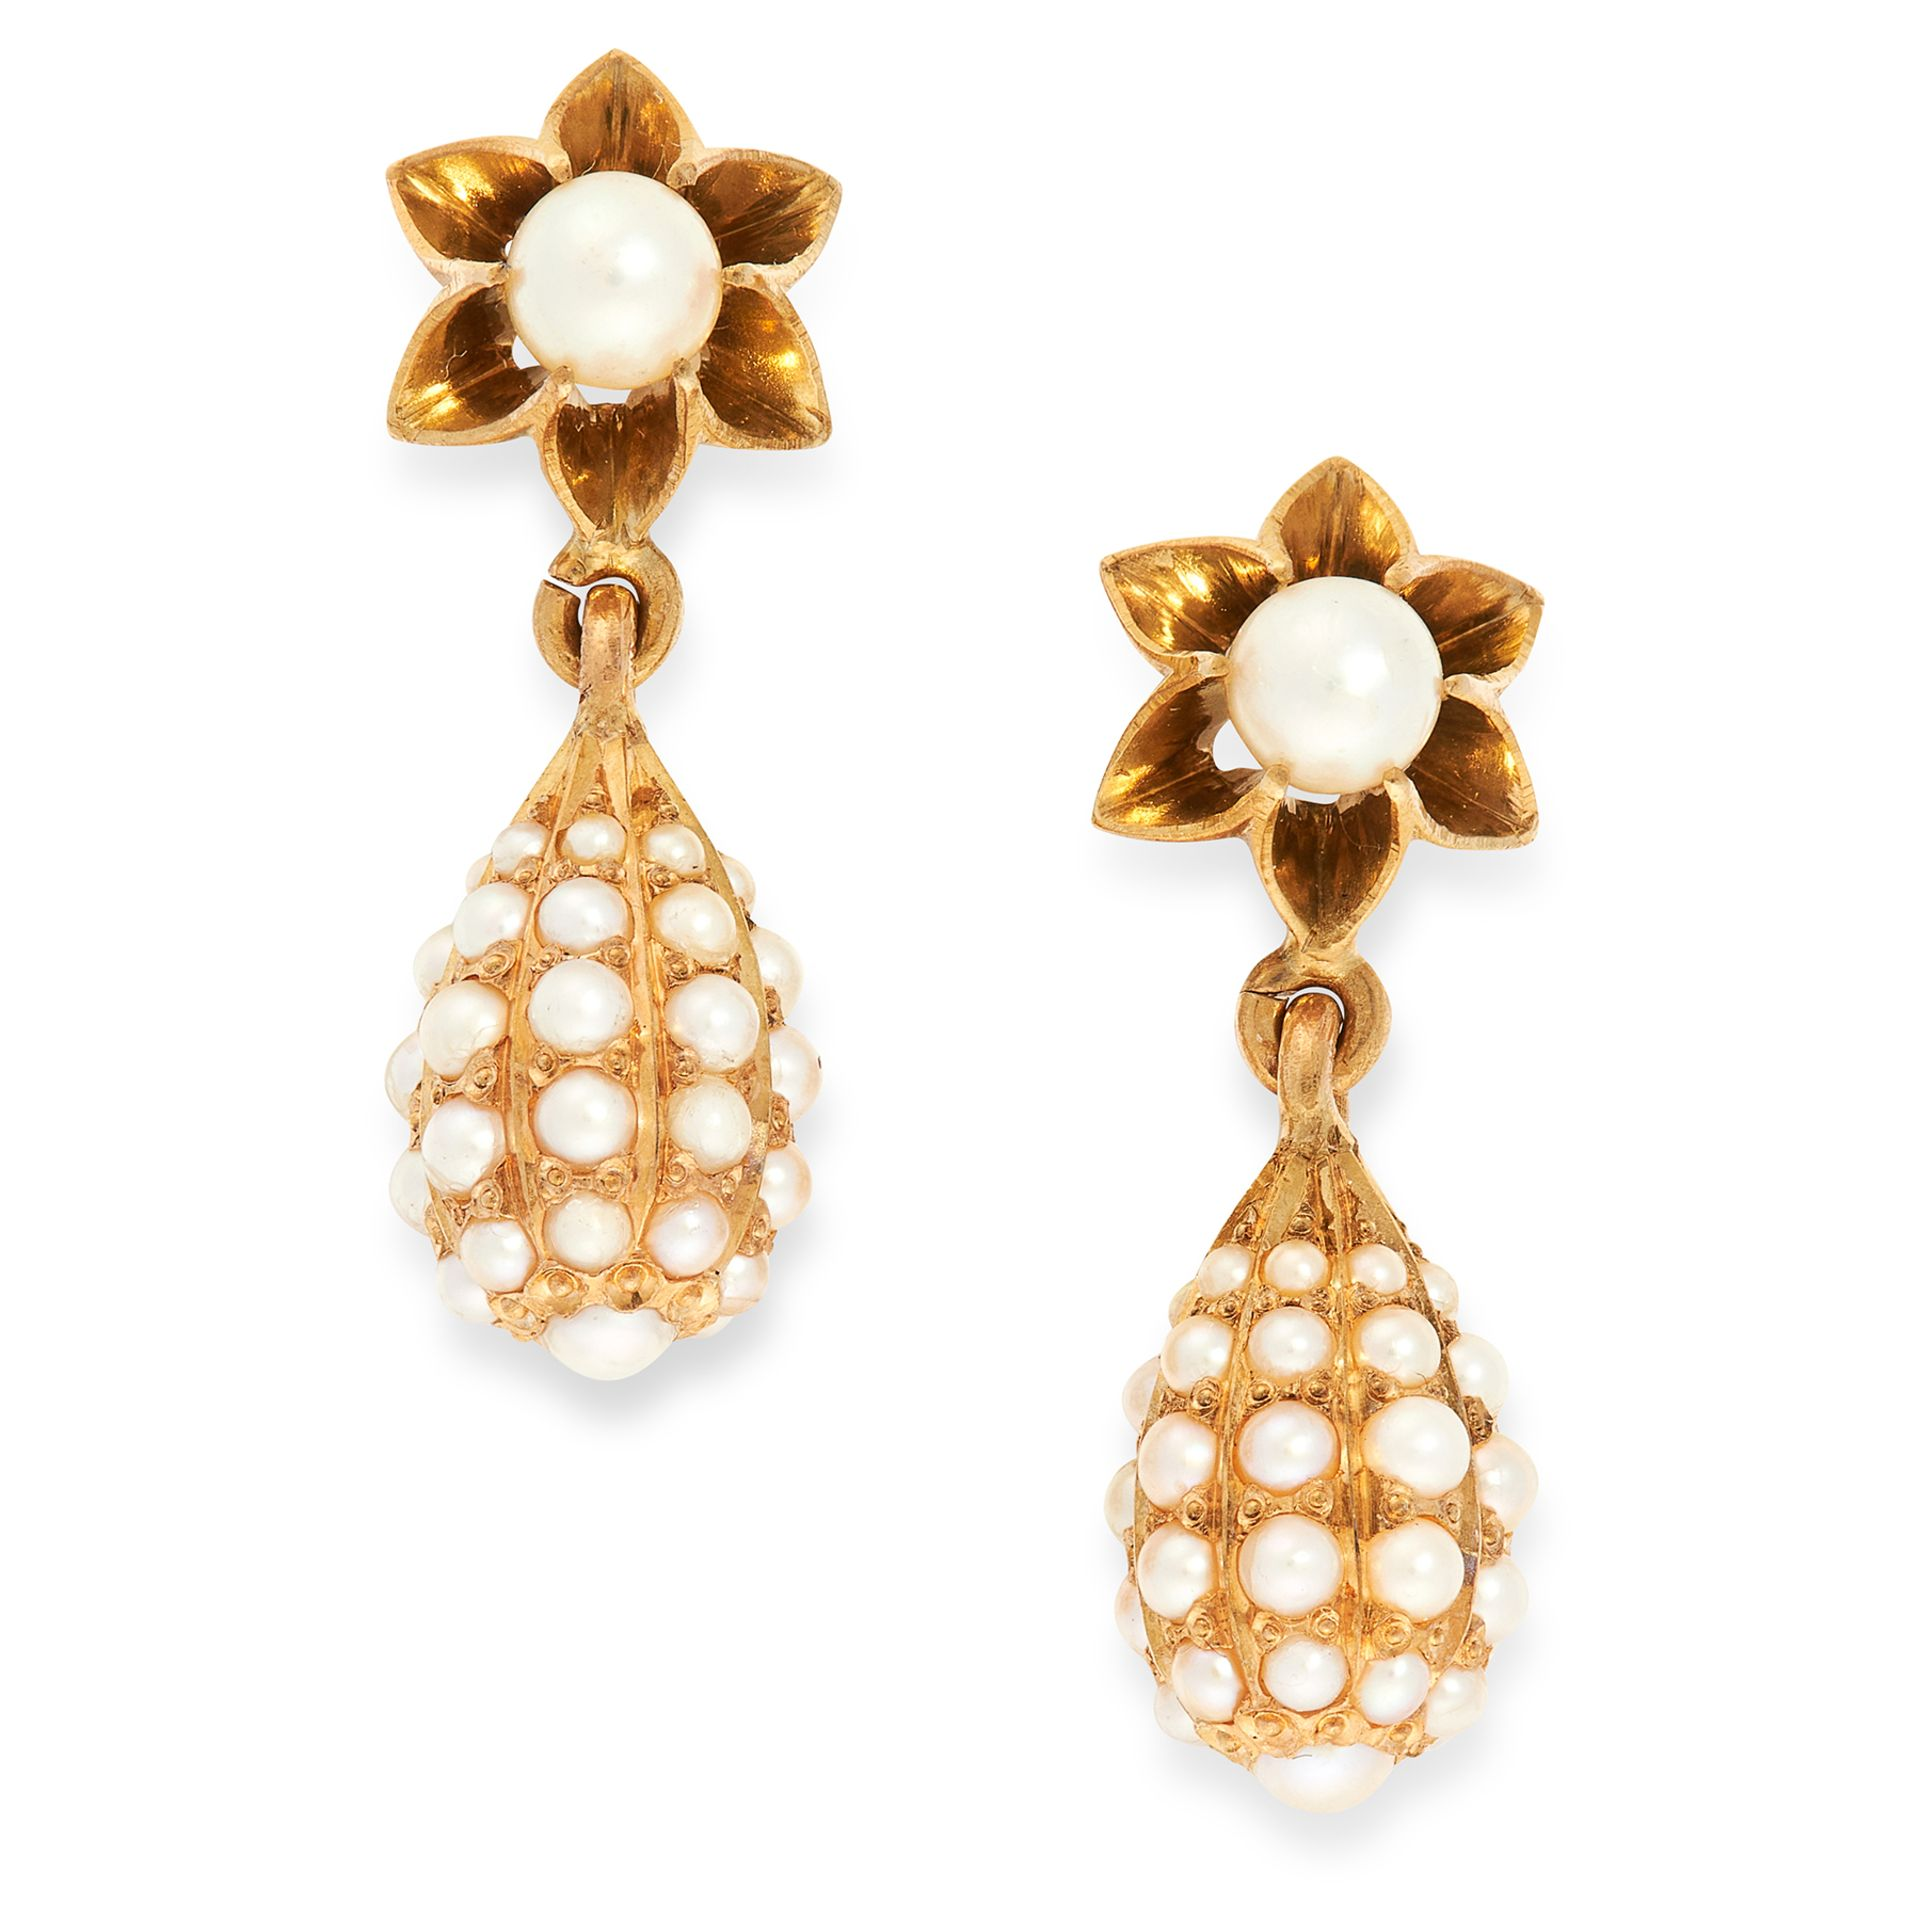 A PAIR OF ANTIQUE PEARL DROP EARRINGS in yellow gold, each suspending a tapering drop jewelled